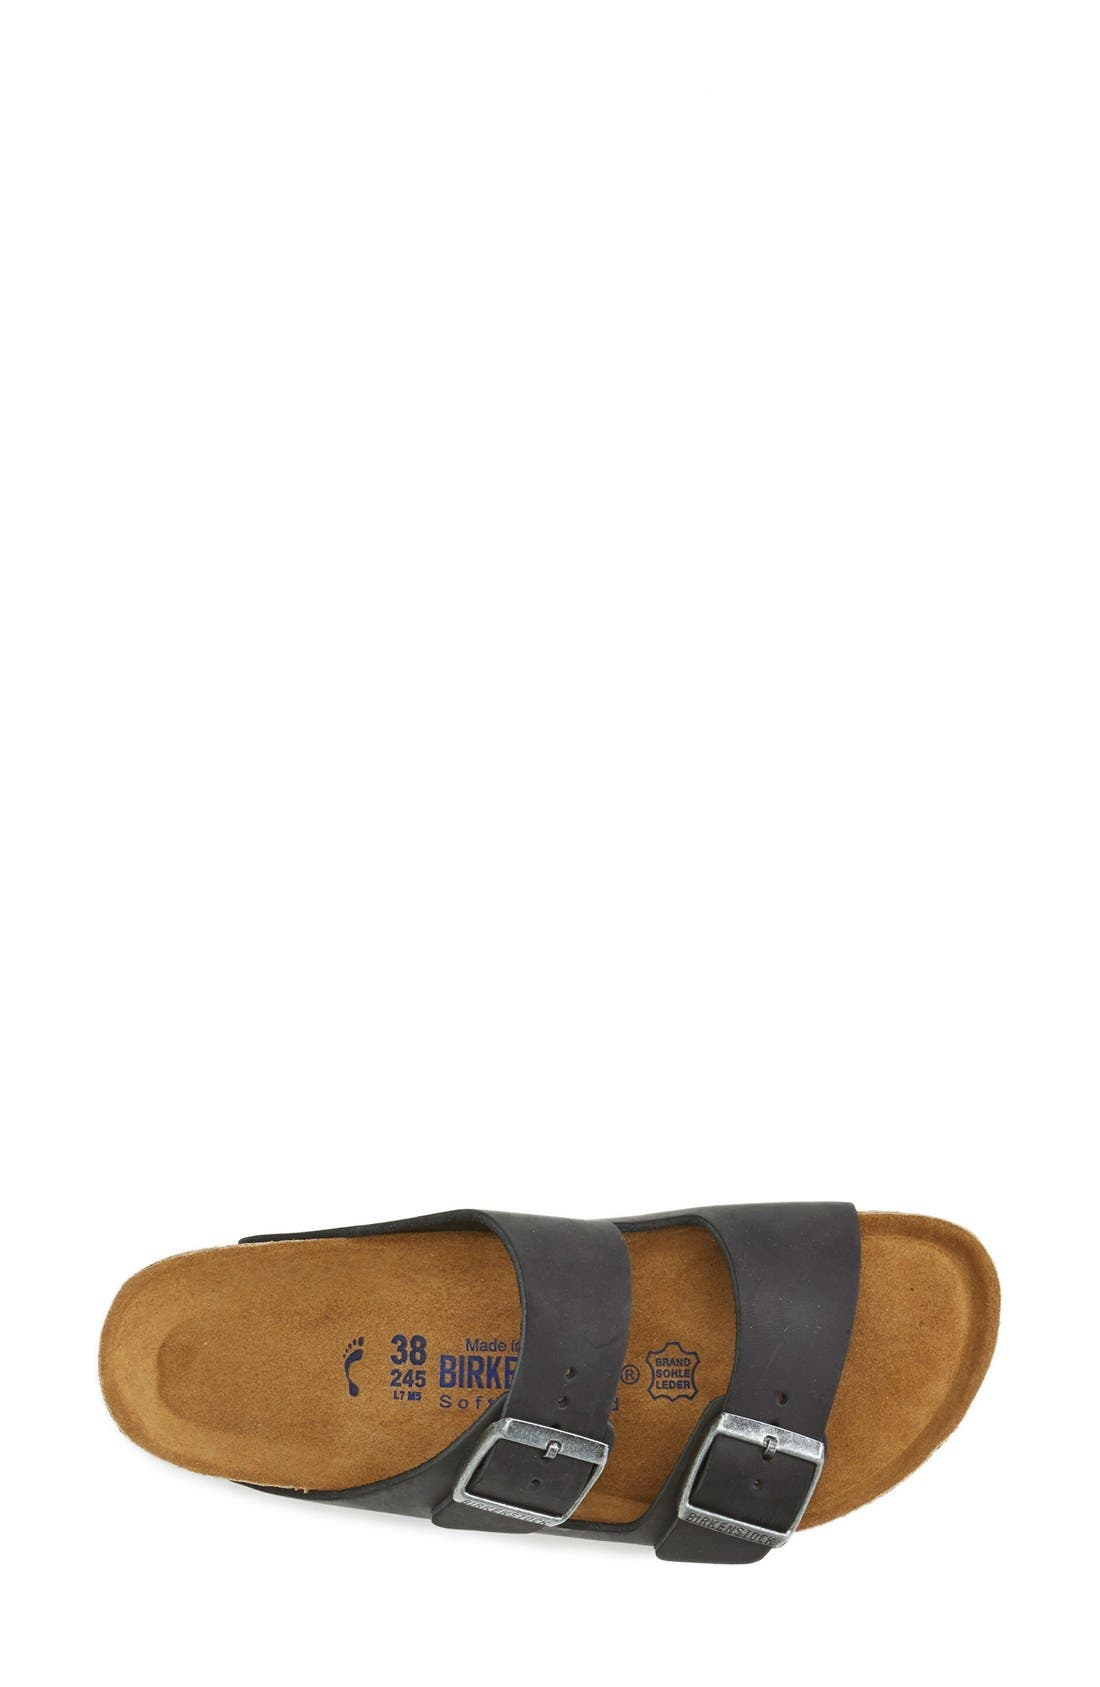 Alternate Image 3  - Birkenstock 'Arizona' Soft Footbed Sandal (Women)